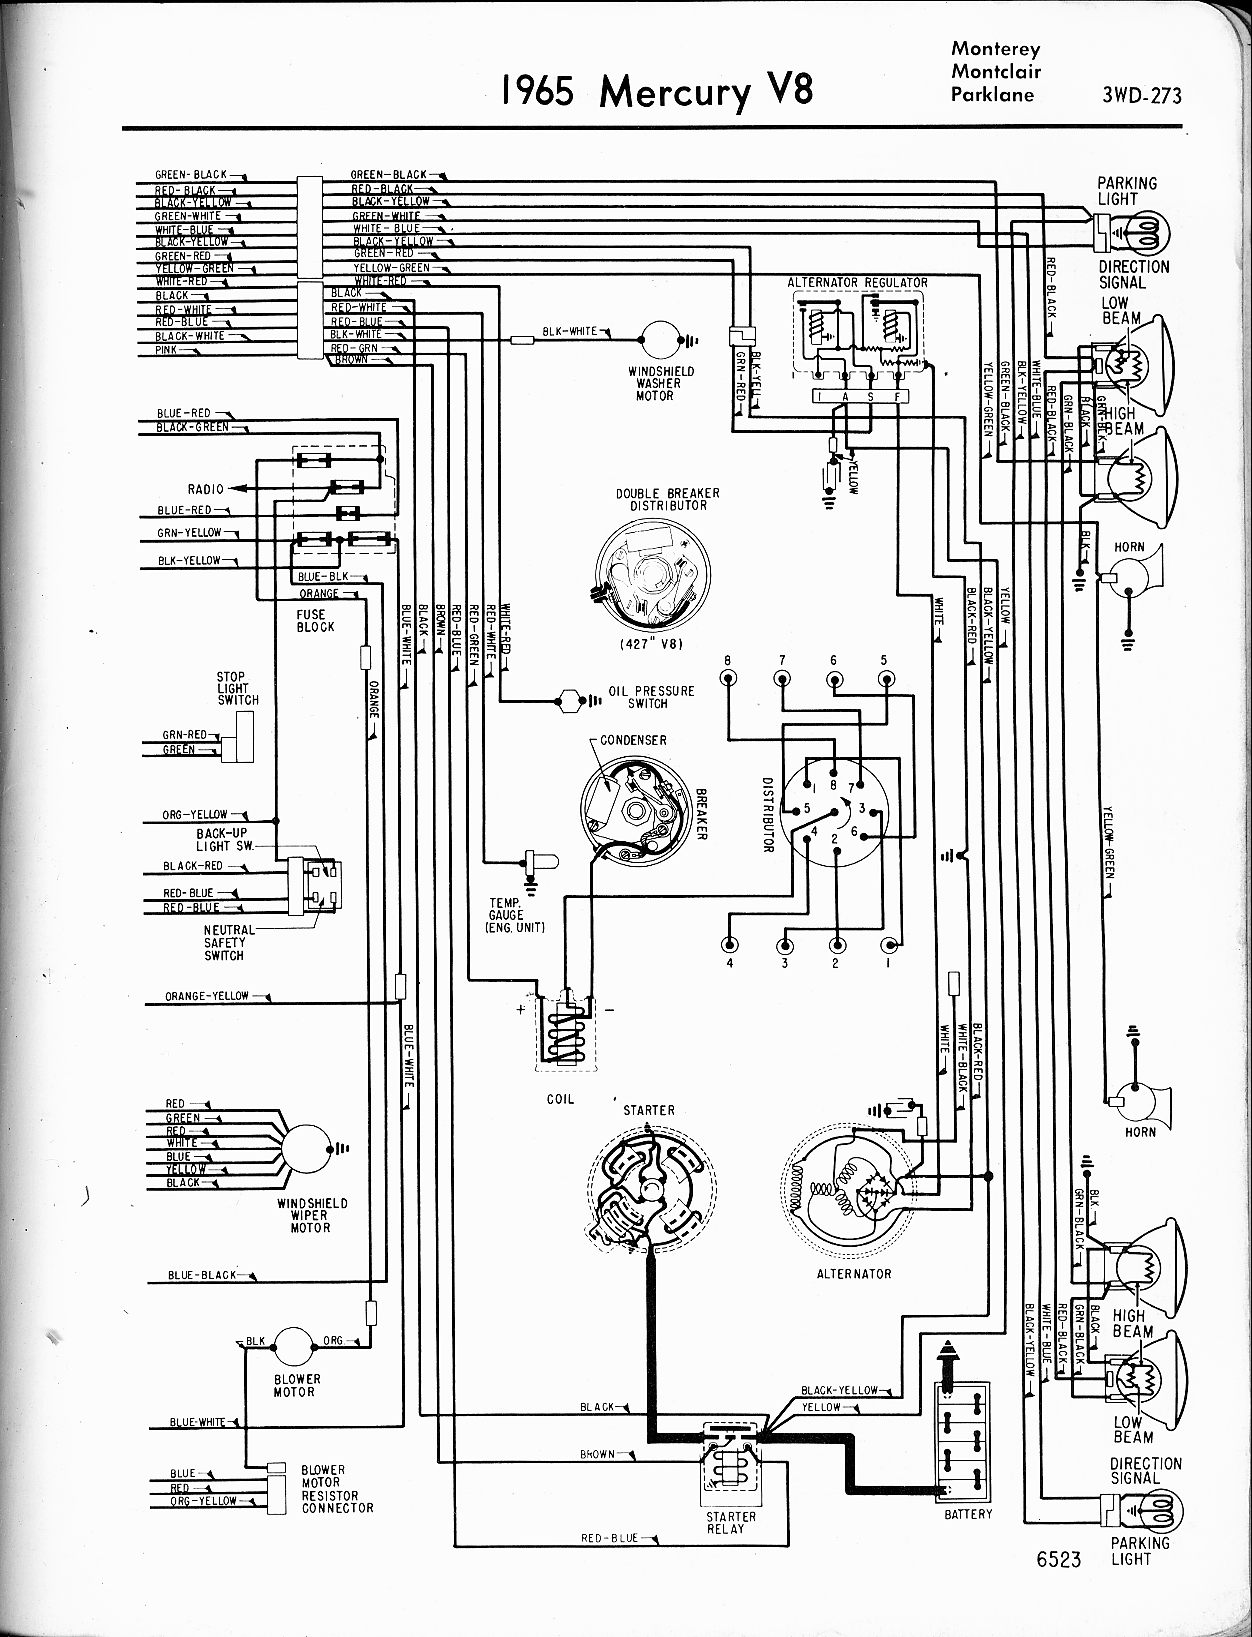 1970 Camaro Dash Wiring Diagram Ignition Library Built In Regulator 67 Mercury Diagrams The Old Car Manual Project 1968 Harness